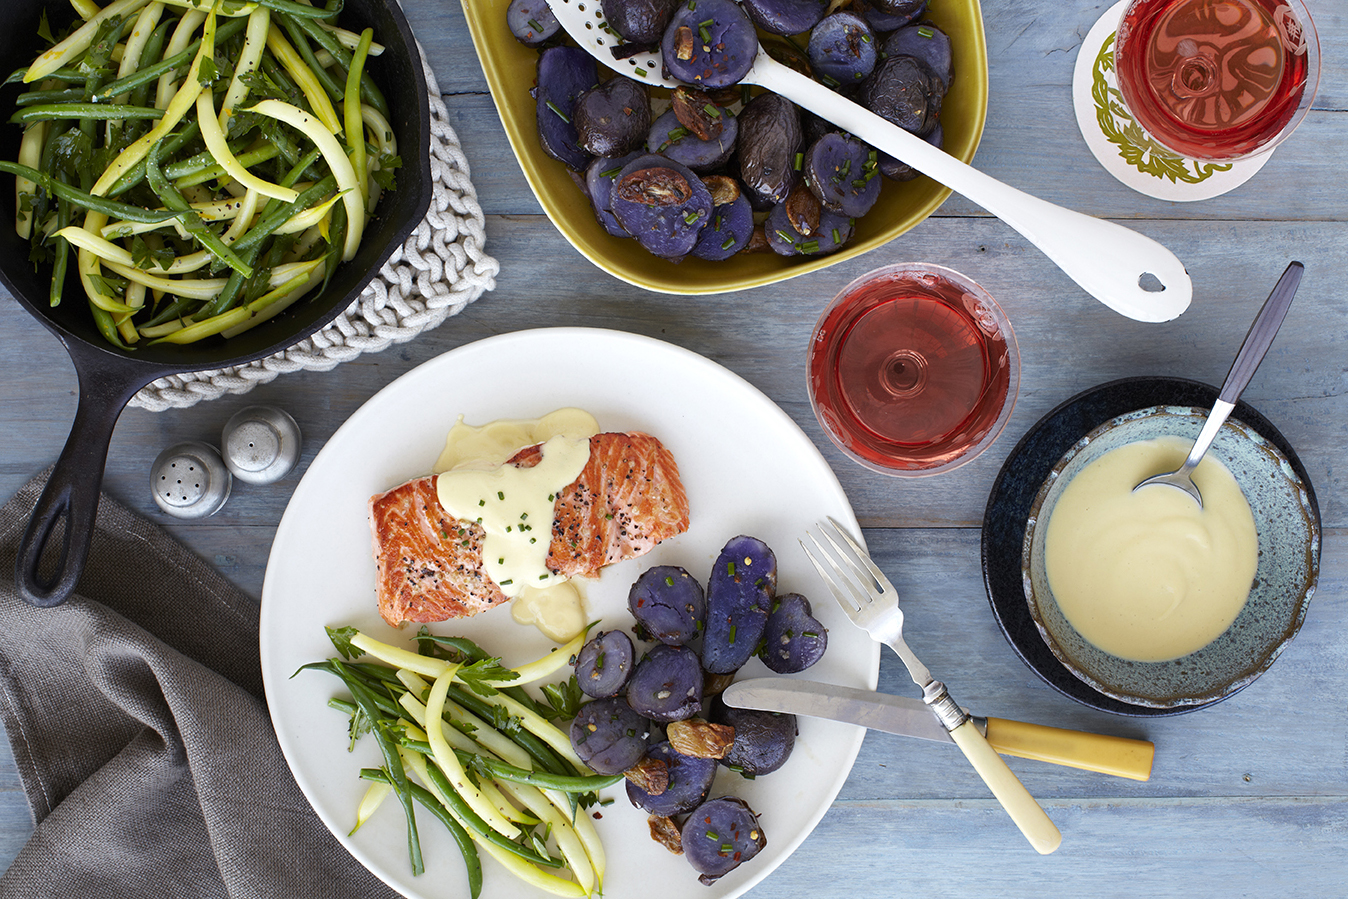 Pan-seared salmon with a dollop of Golden Citrus accompanied by roasted potatoes and green beans